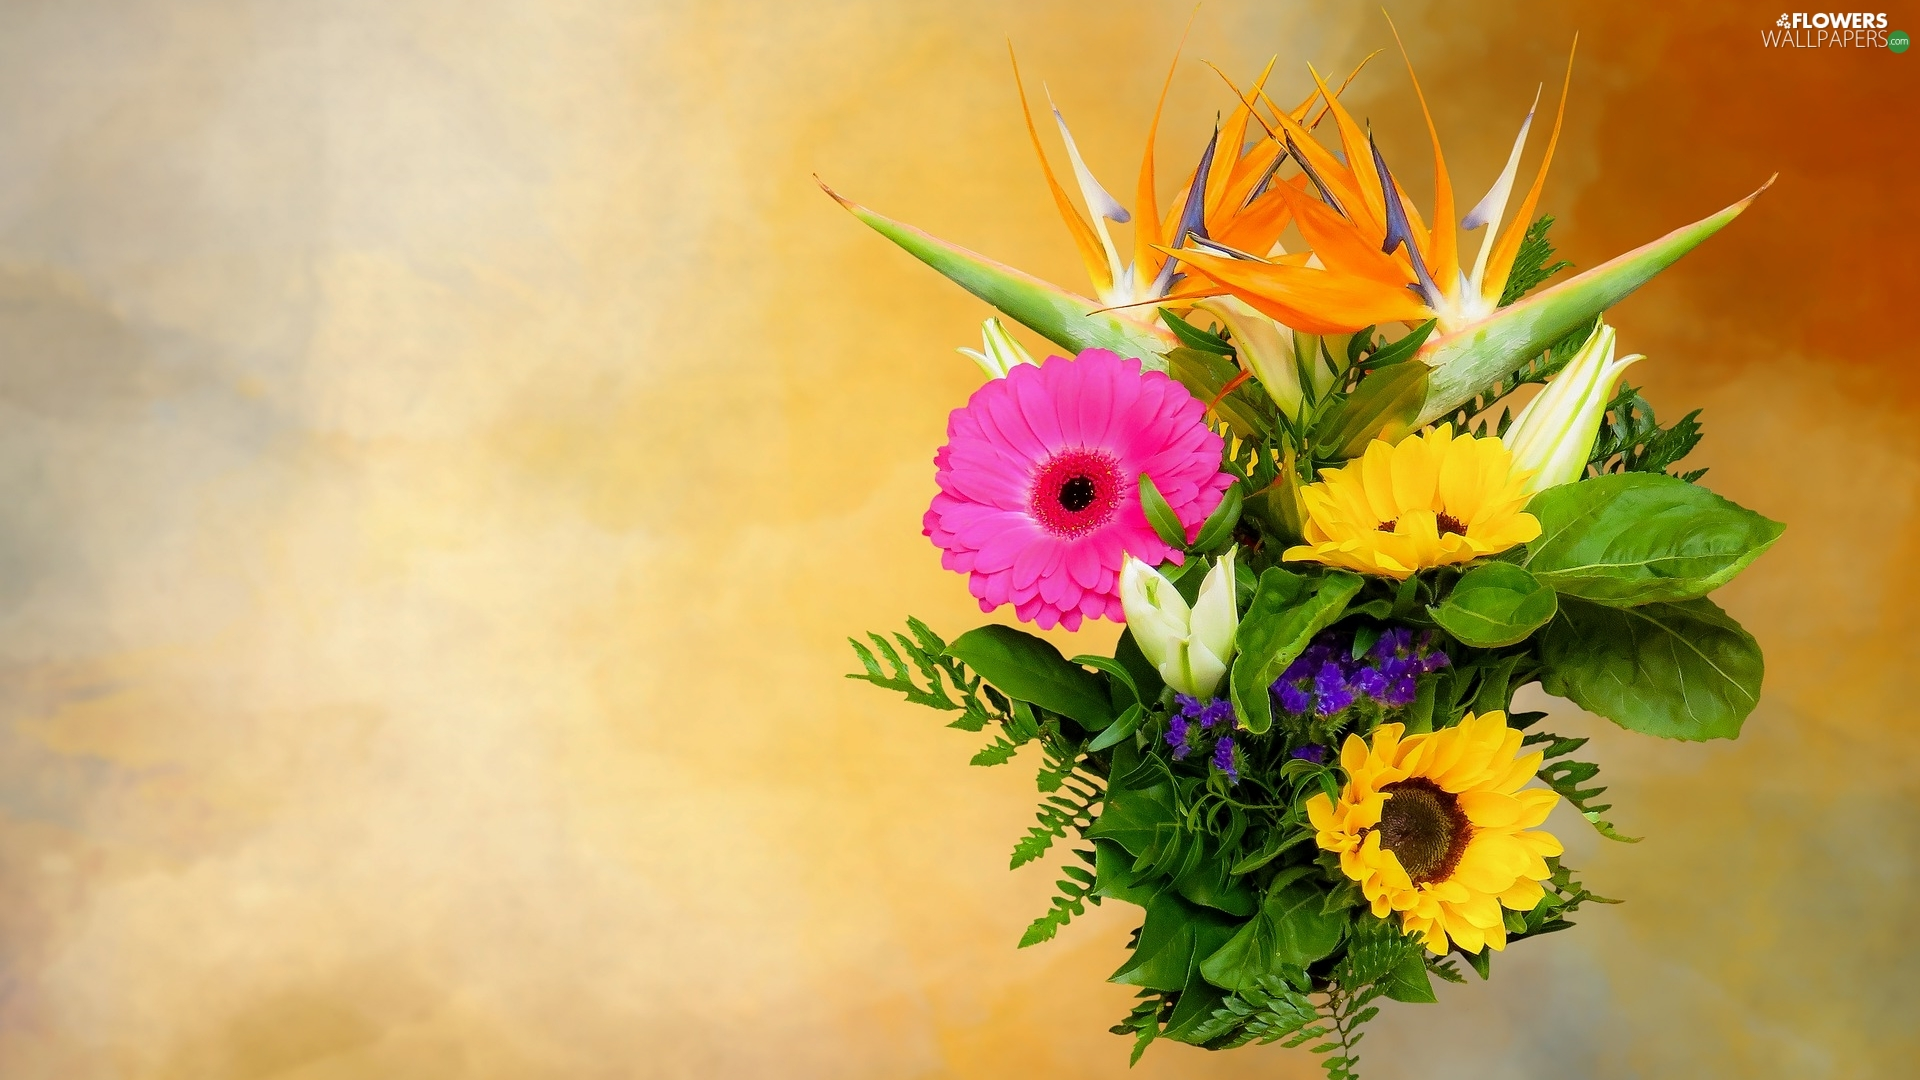 decorative Sunflowers, bouquet, Yellow, Gerbera, Flowers, Strelitzia, background